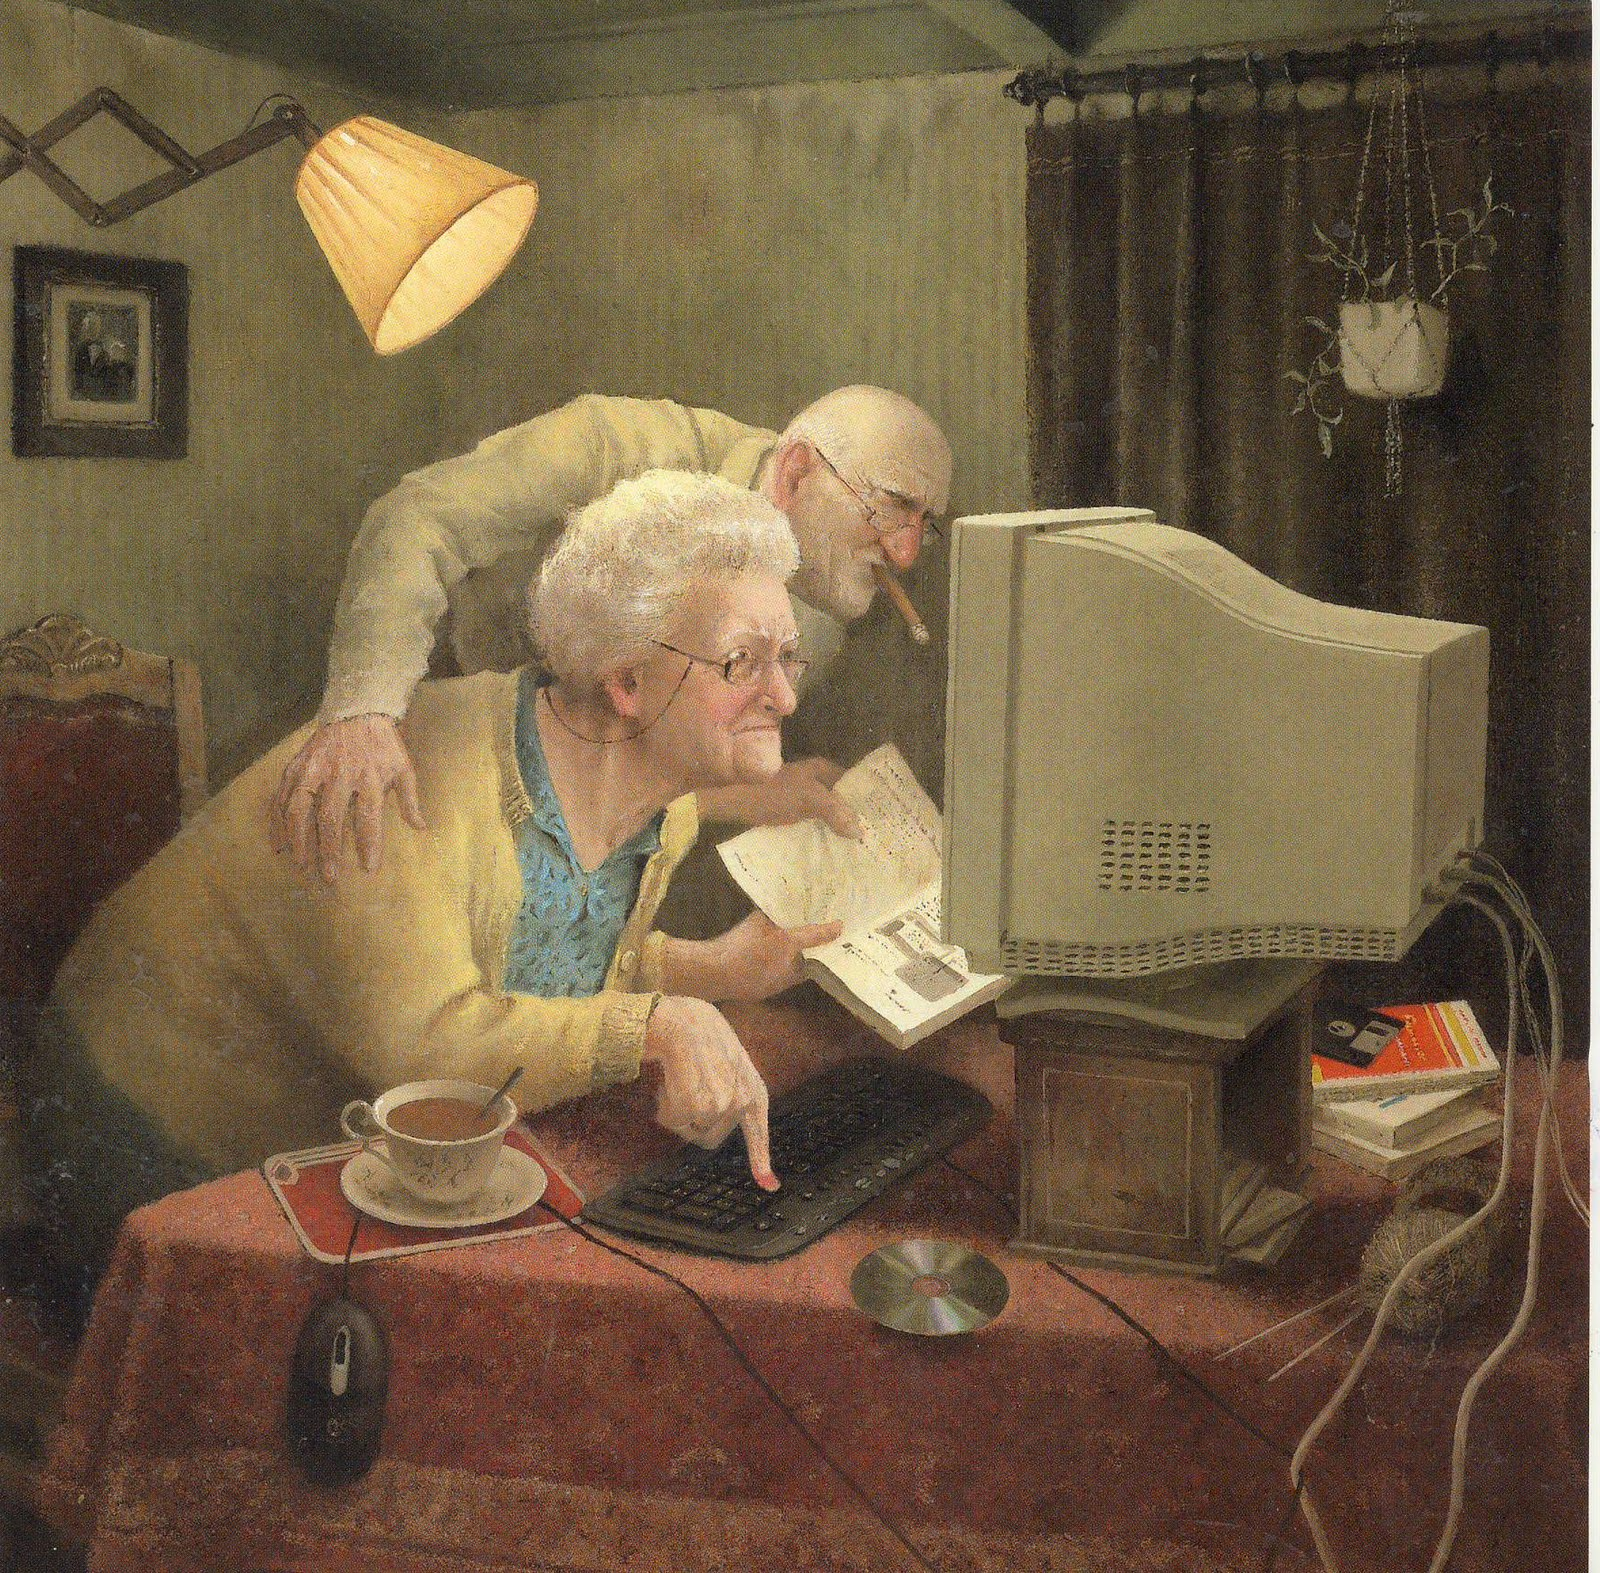 Image of: Faces Oldage Bittersweetness With Splash Of Humor The Surprising Paintings Of Marius Van Dokkum Passepartout Bianca Olivia Nita Oldage Bittersweetness With Splash Of Humor The Surprising